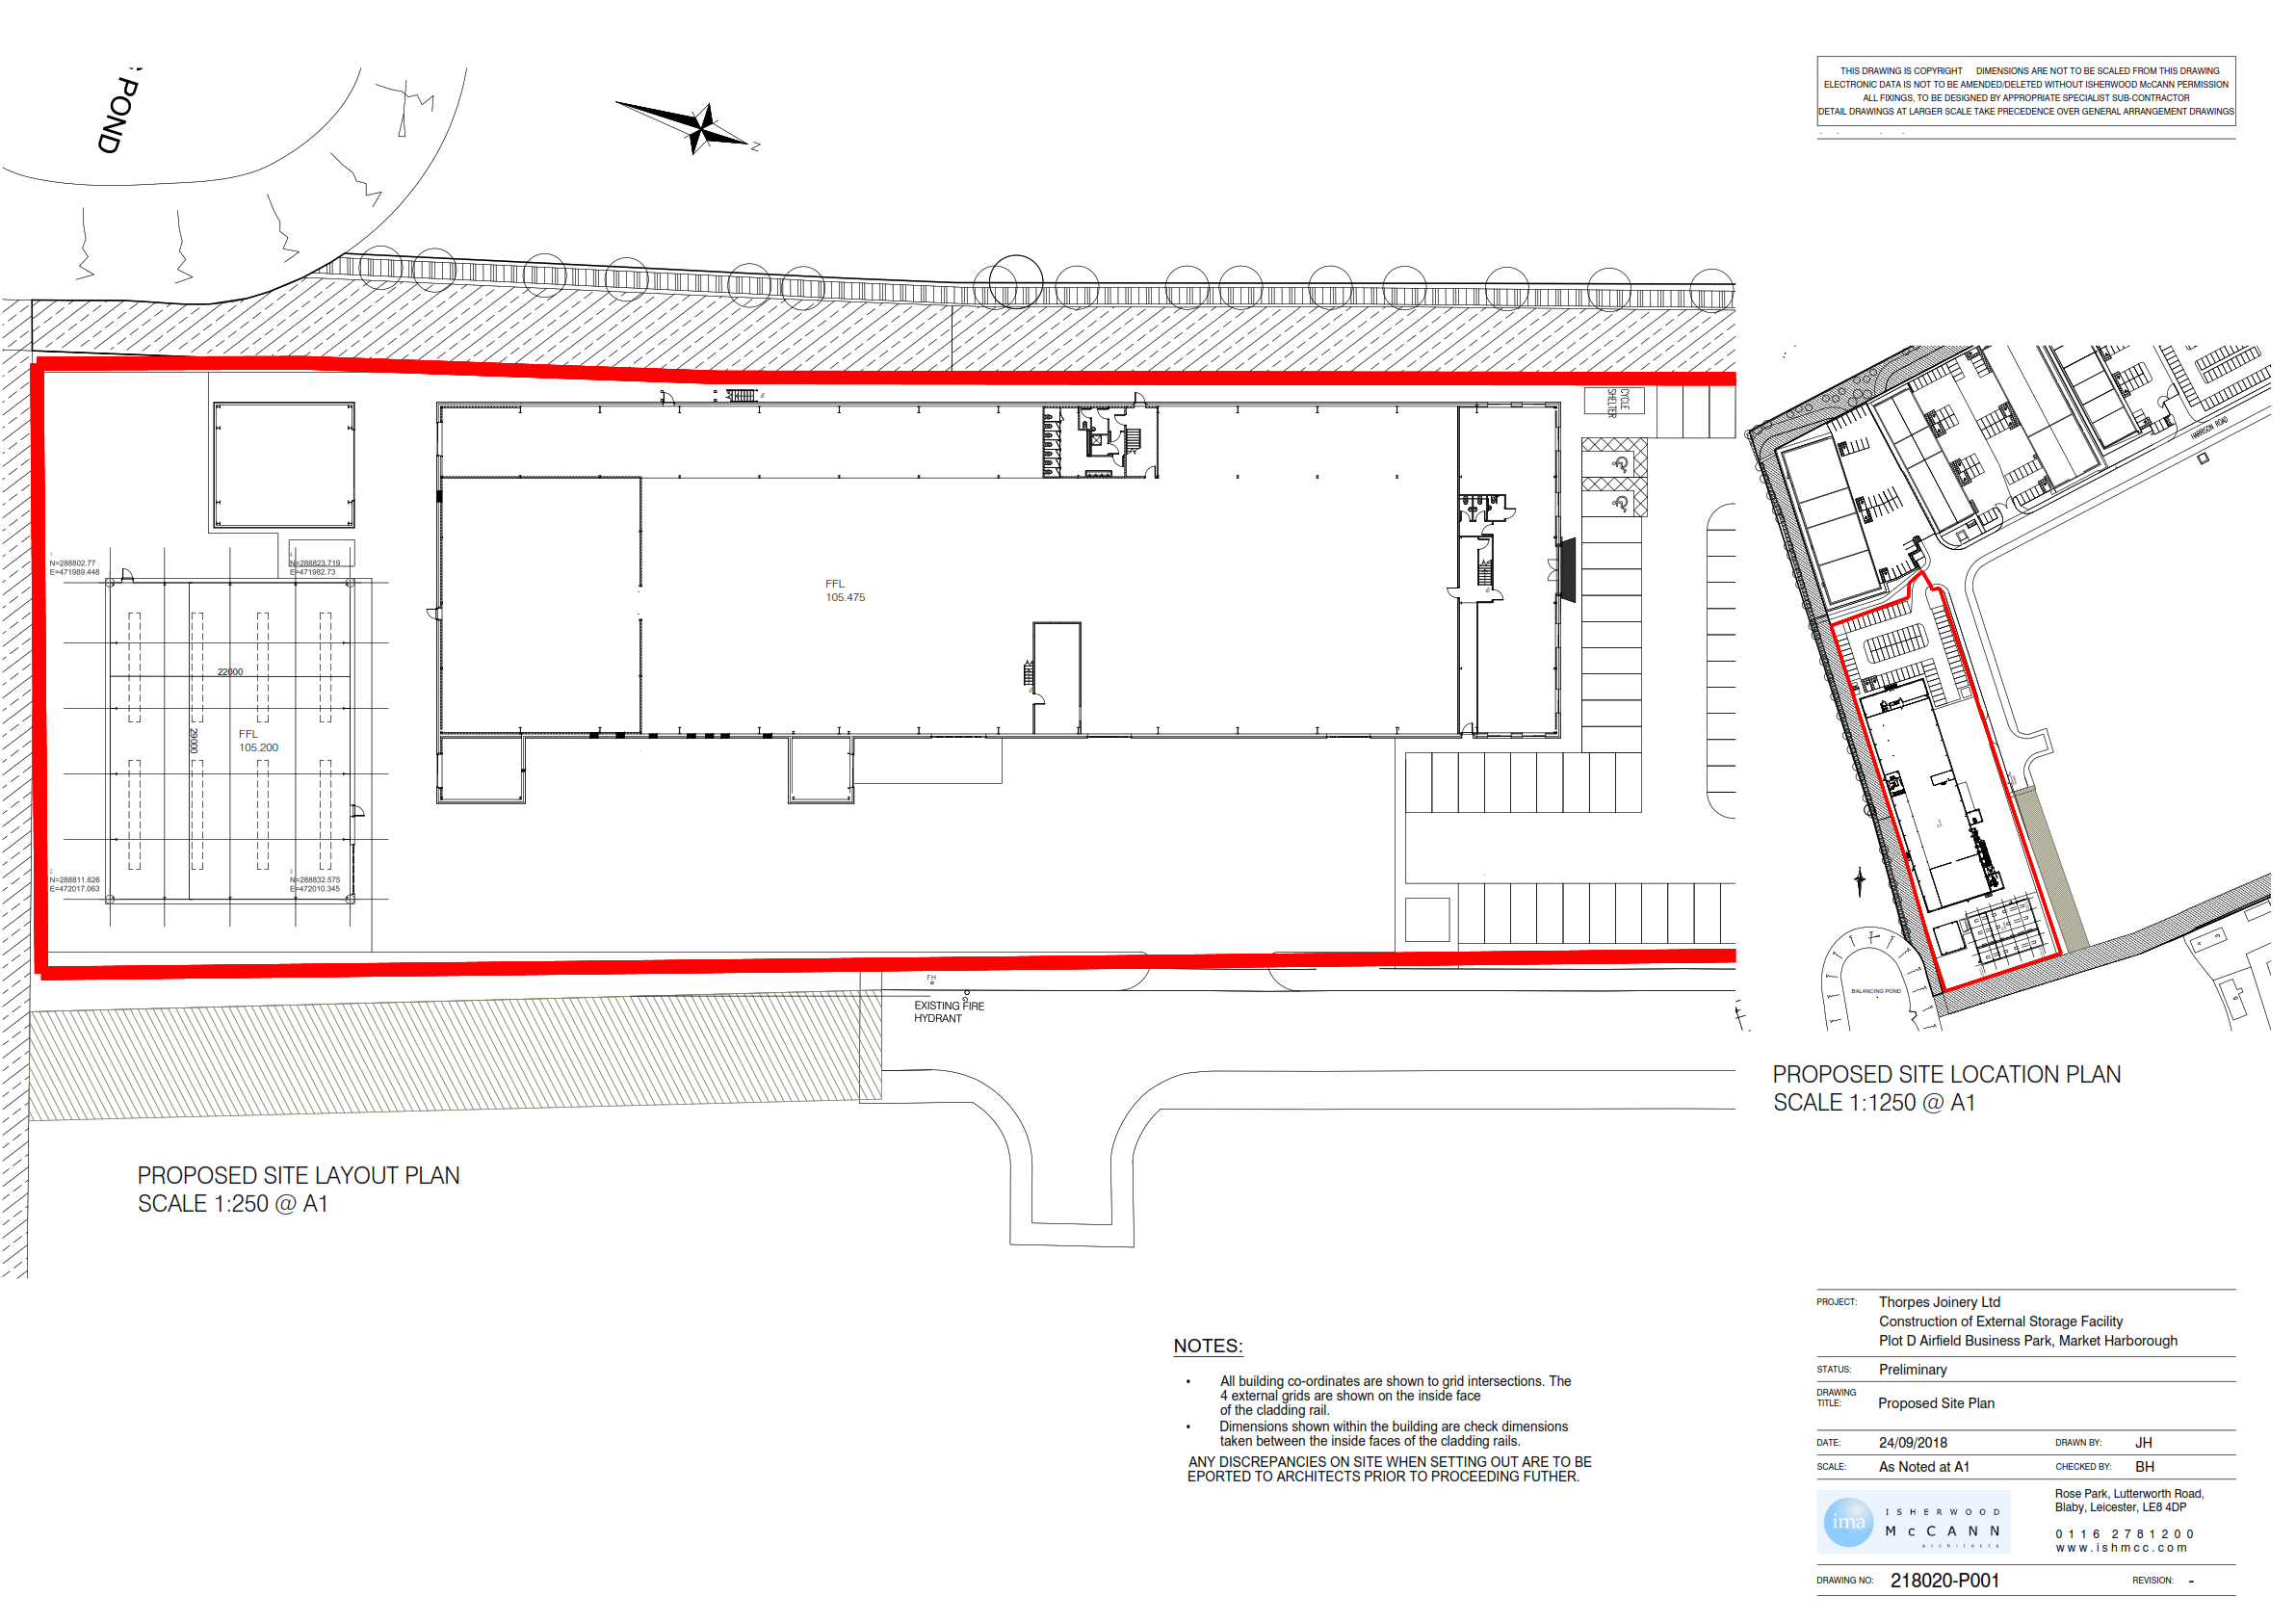 218020-P001 - Proposed Site Plan Revision - (A1)_001.png